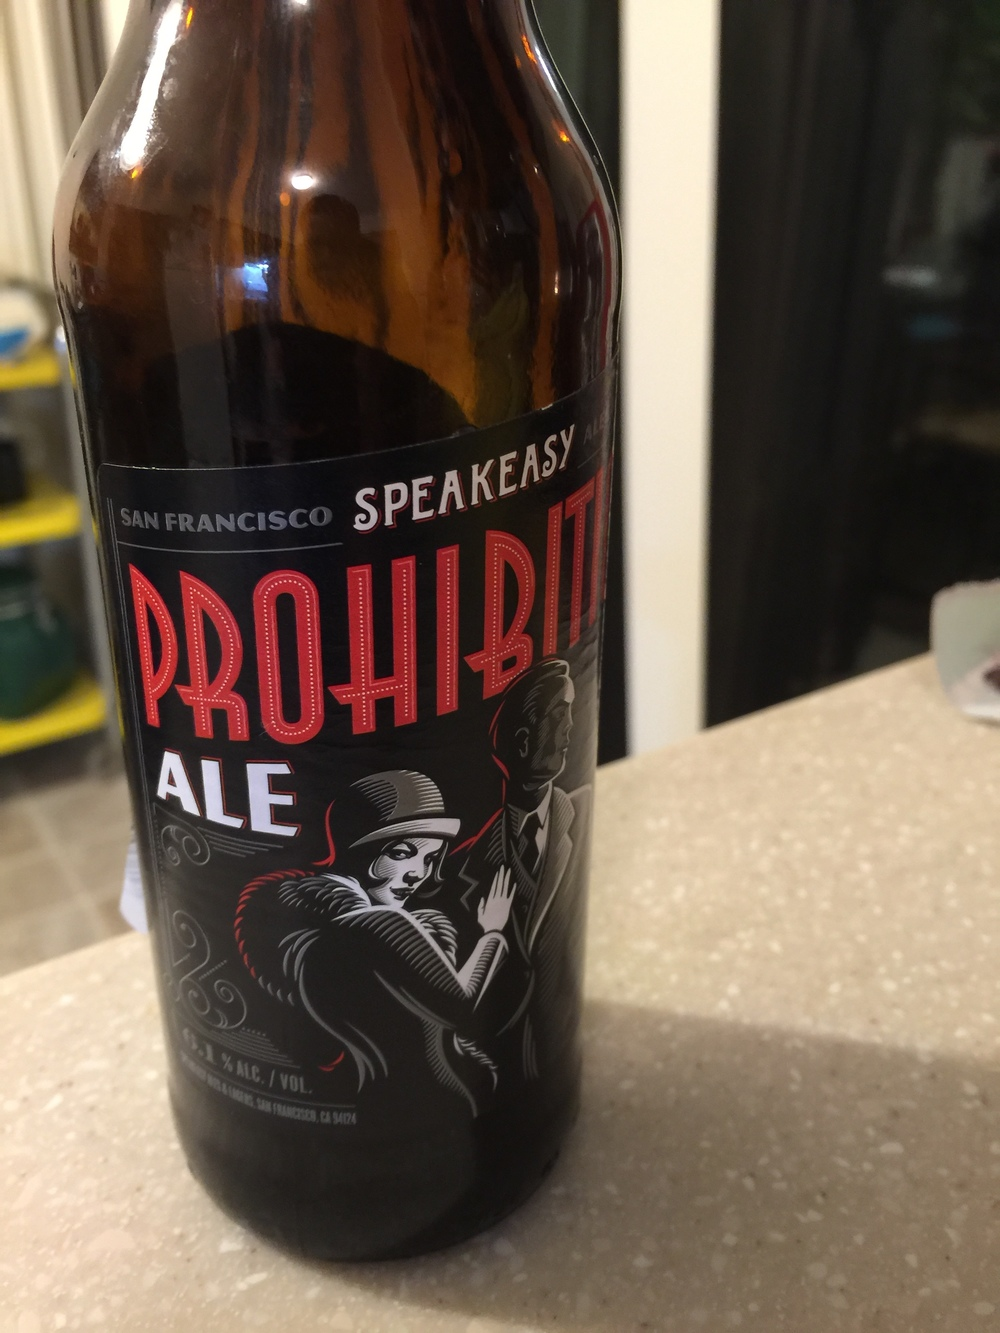 Speakeasy Prohibition Ale   A tasty beverage that looks cool while you are drinking it. It's got a nutty overtone to it, similar to the Noble Scot Ale. The best ale from the week's selection.  Ratings:  Josh: 8/10  Wook: 8/10  Average: 8/10